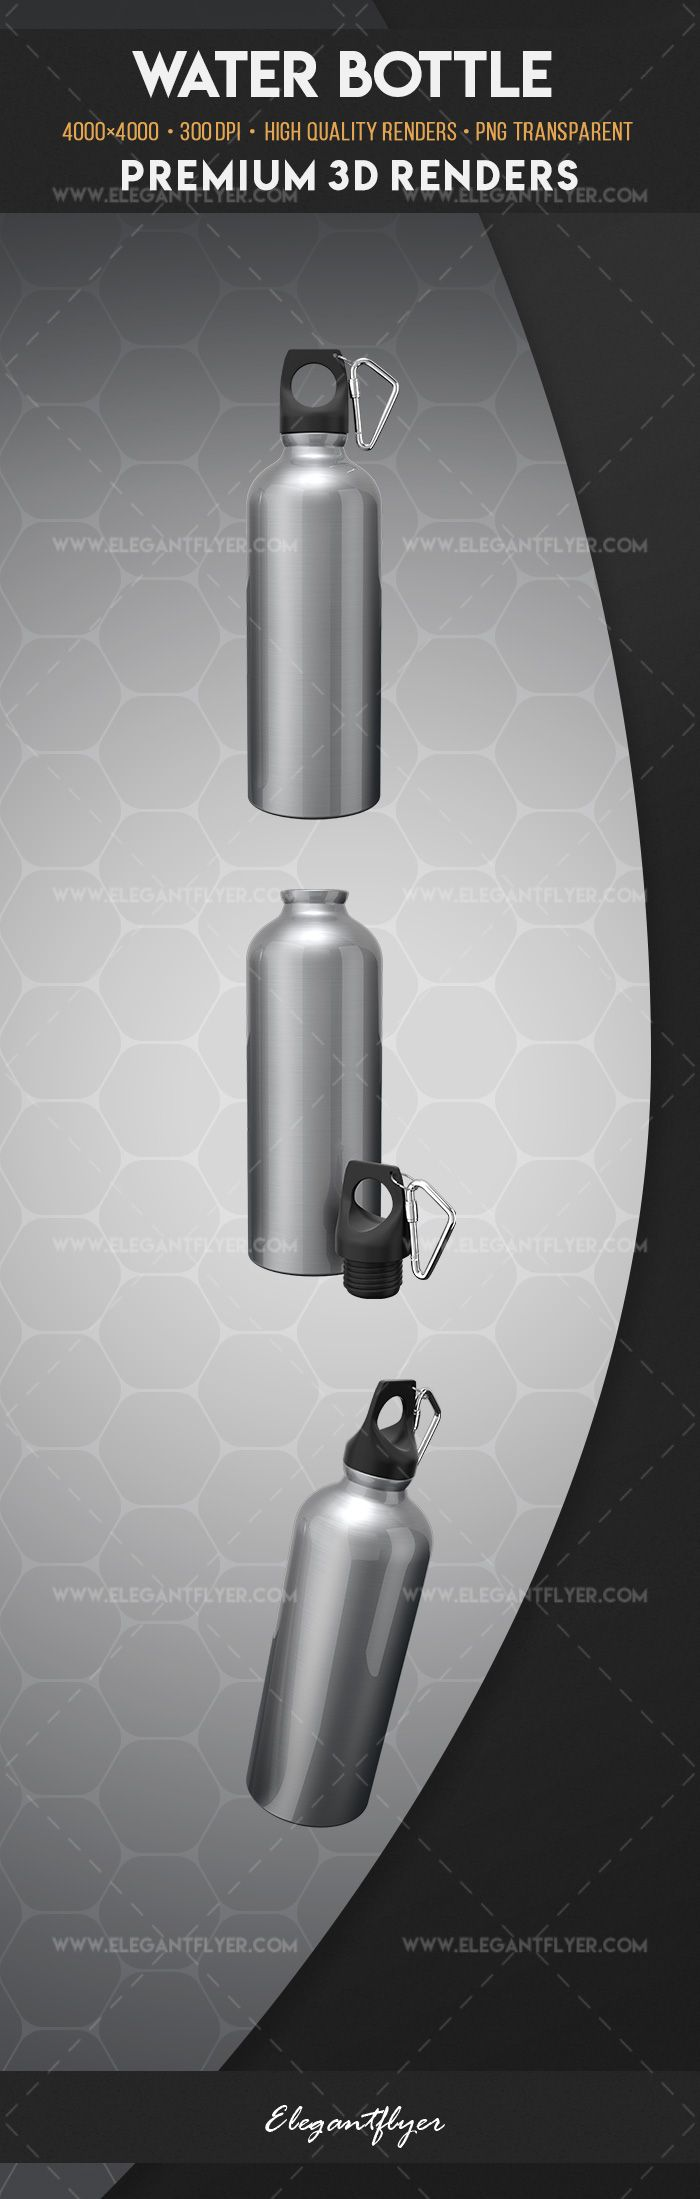 Water bottle – Premium 3d Render Templates